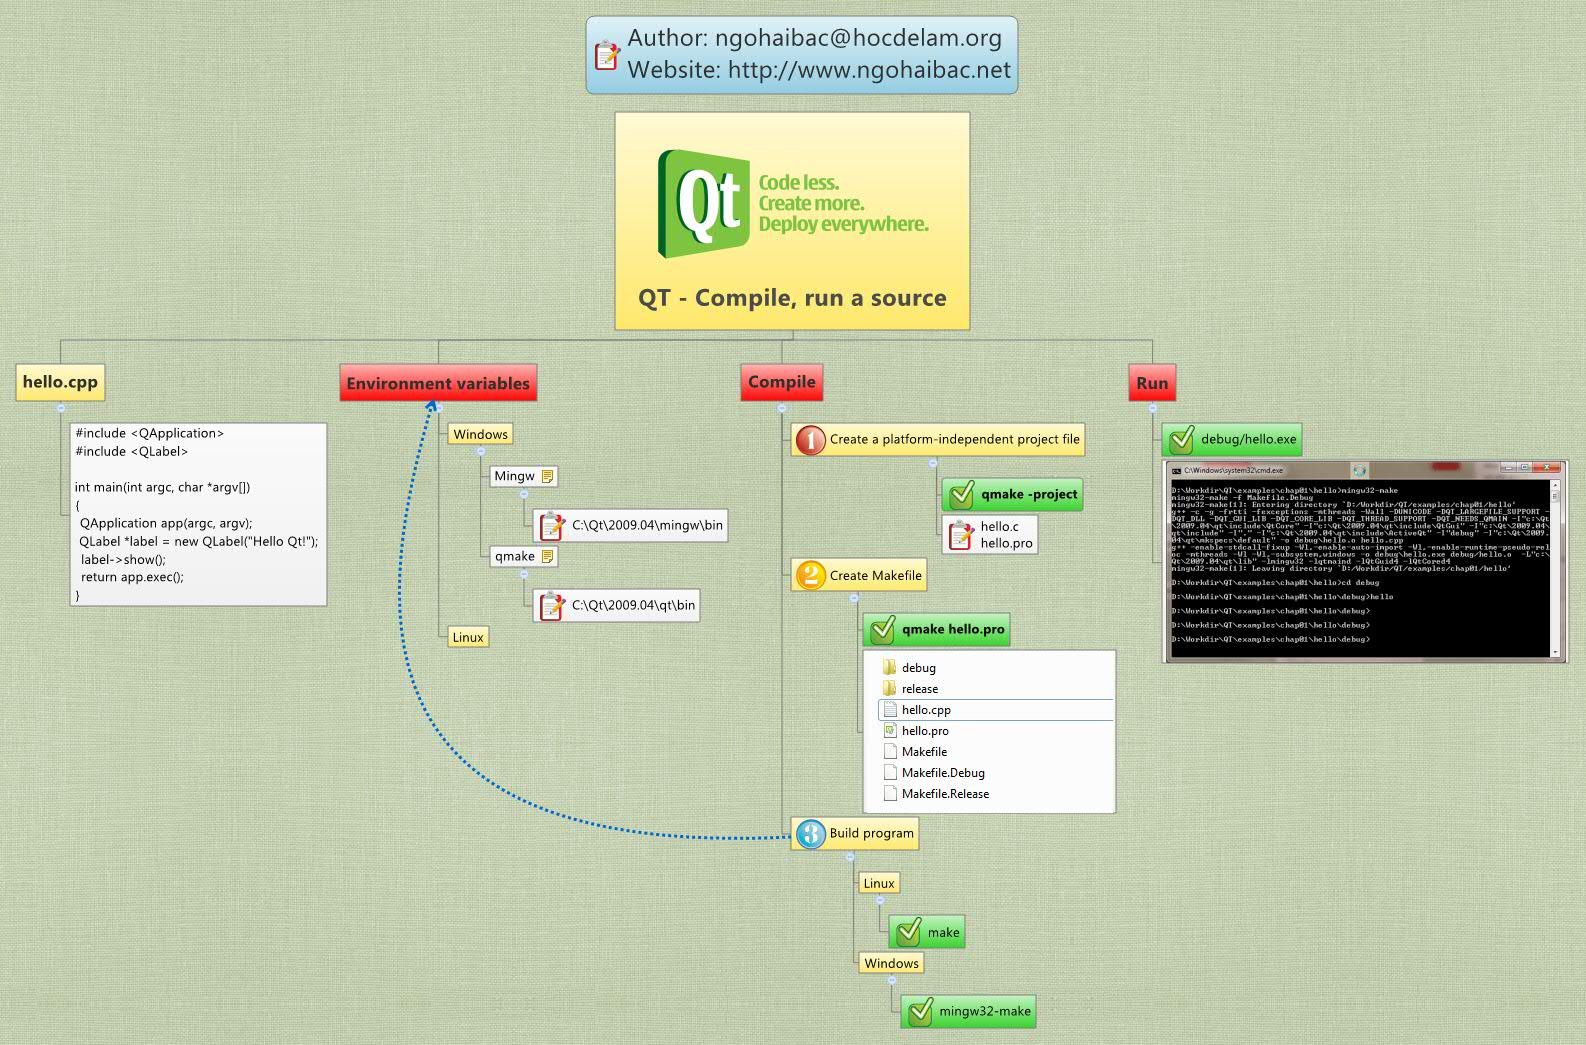 QT - Compile, run a source - XMind - Mind Mapping Software